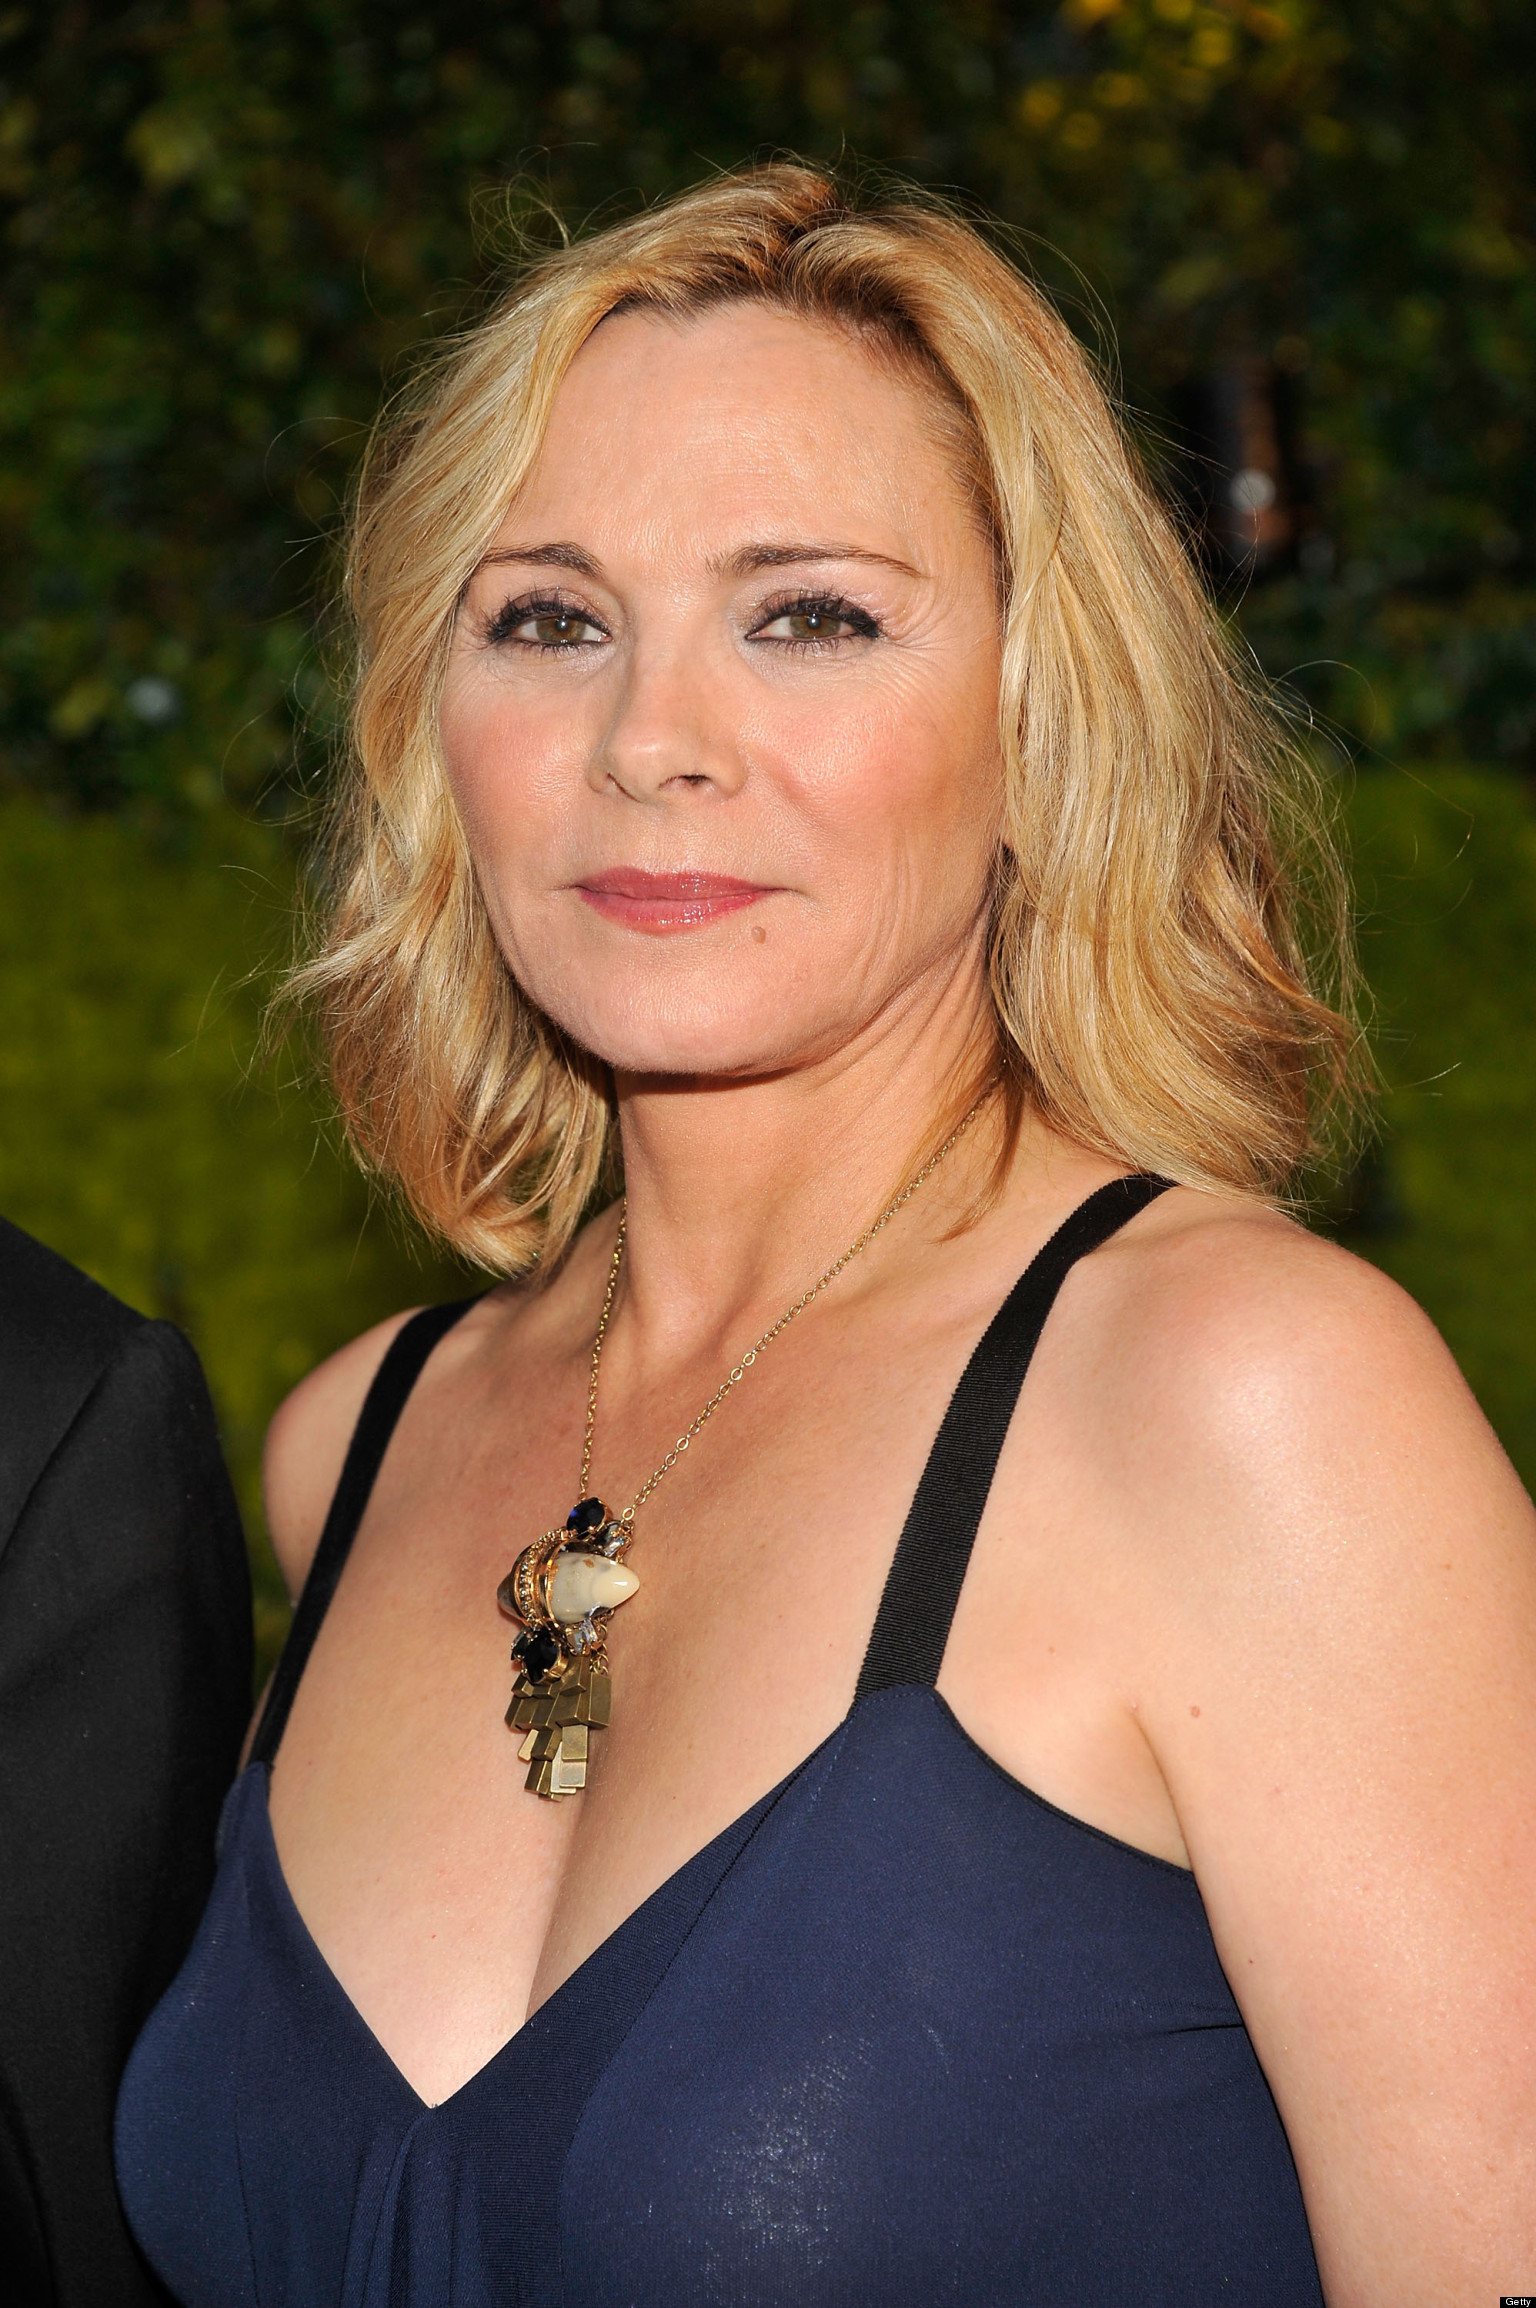 Kim Cattrall - photos, news, filmography, quotes and facts ... Kim Cattrall